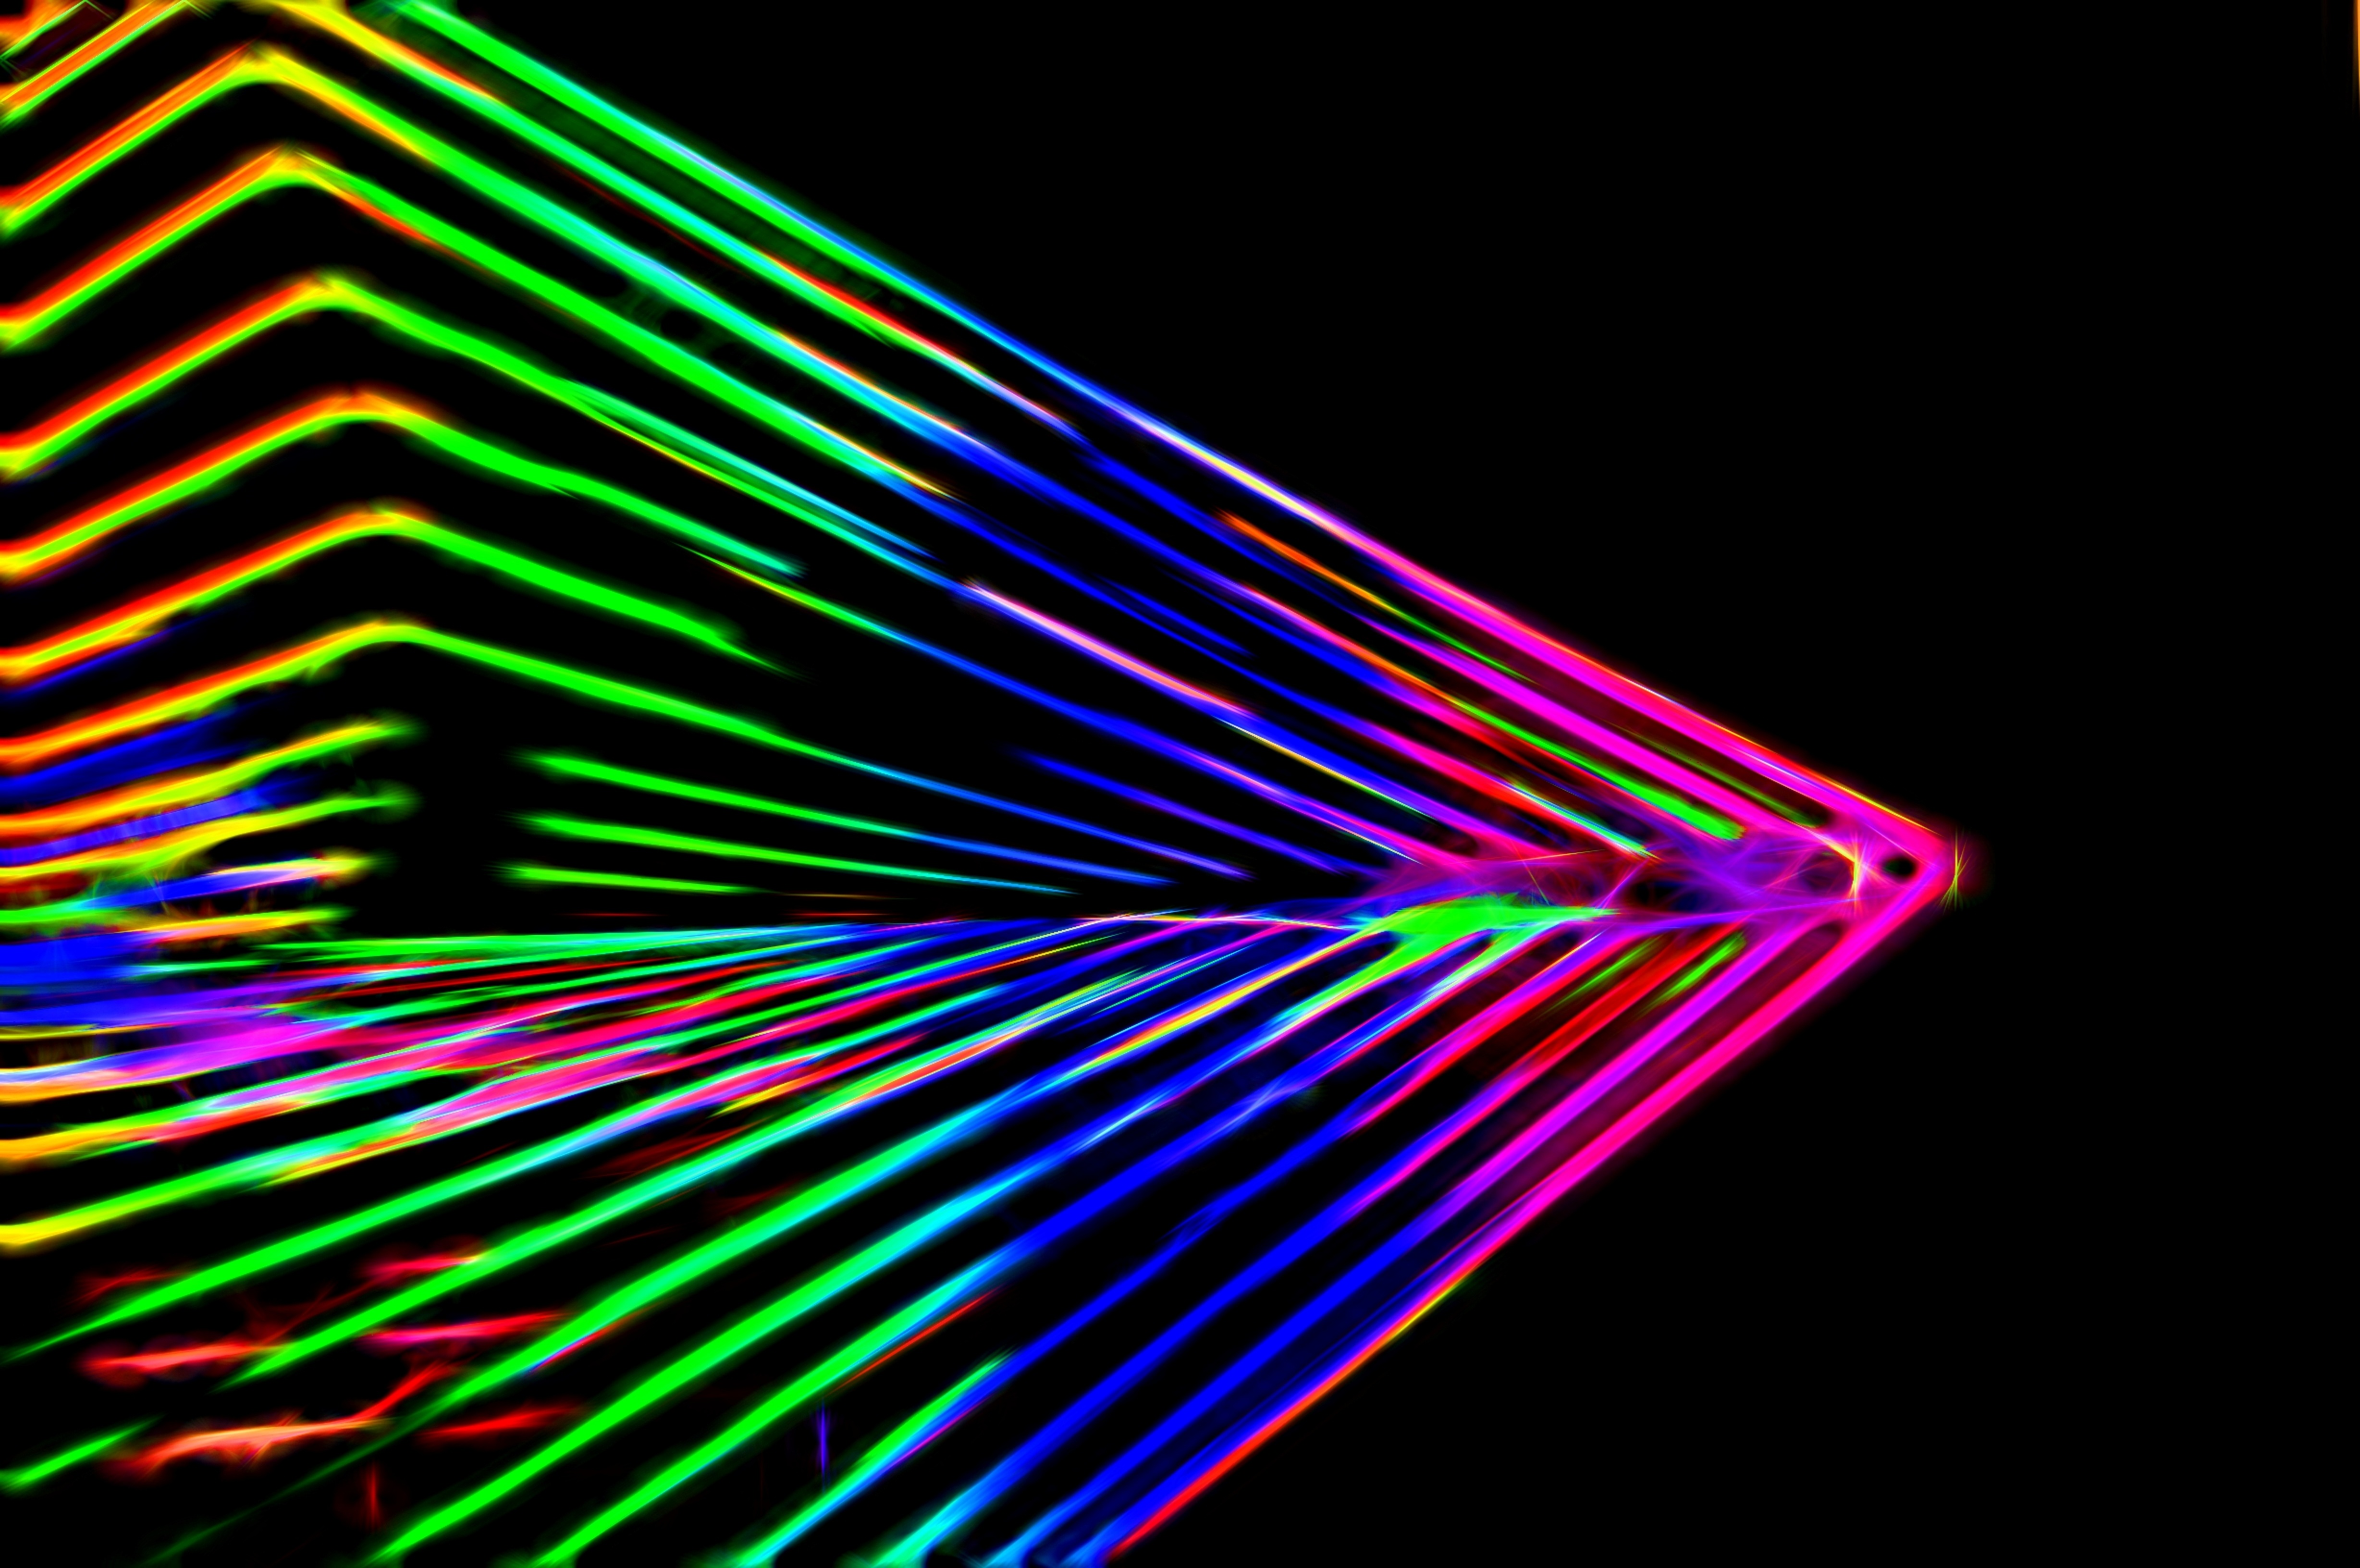 Abstract Neon Lines Black Background Free Image